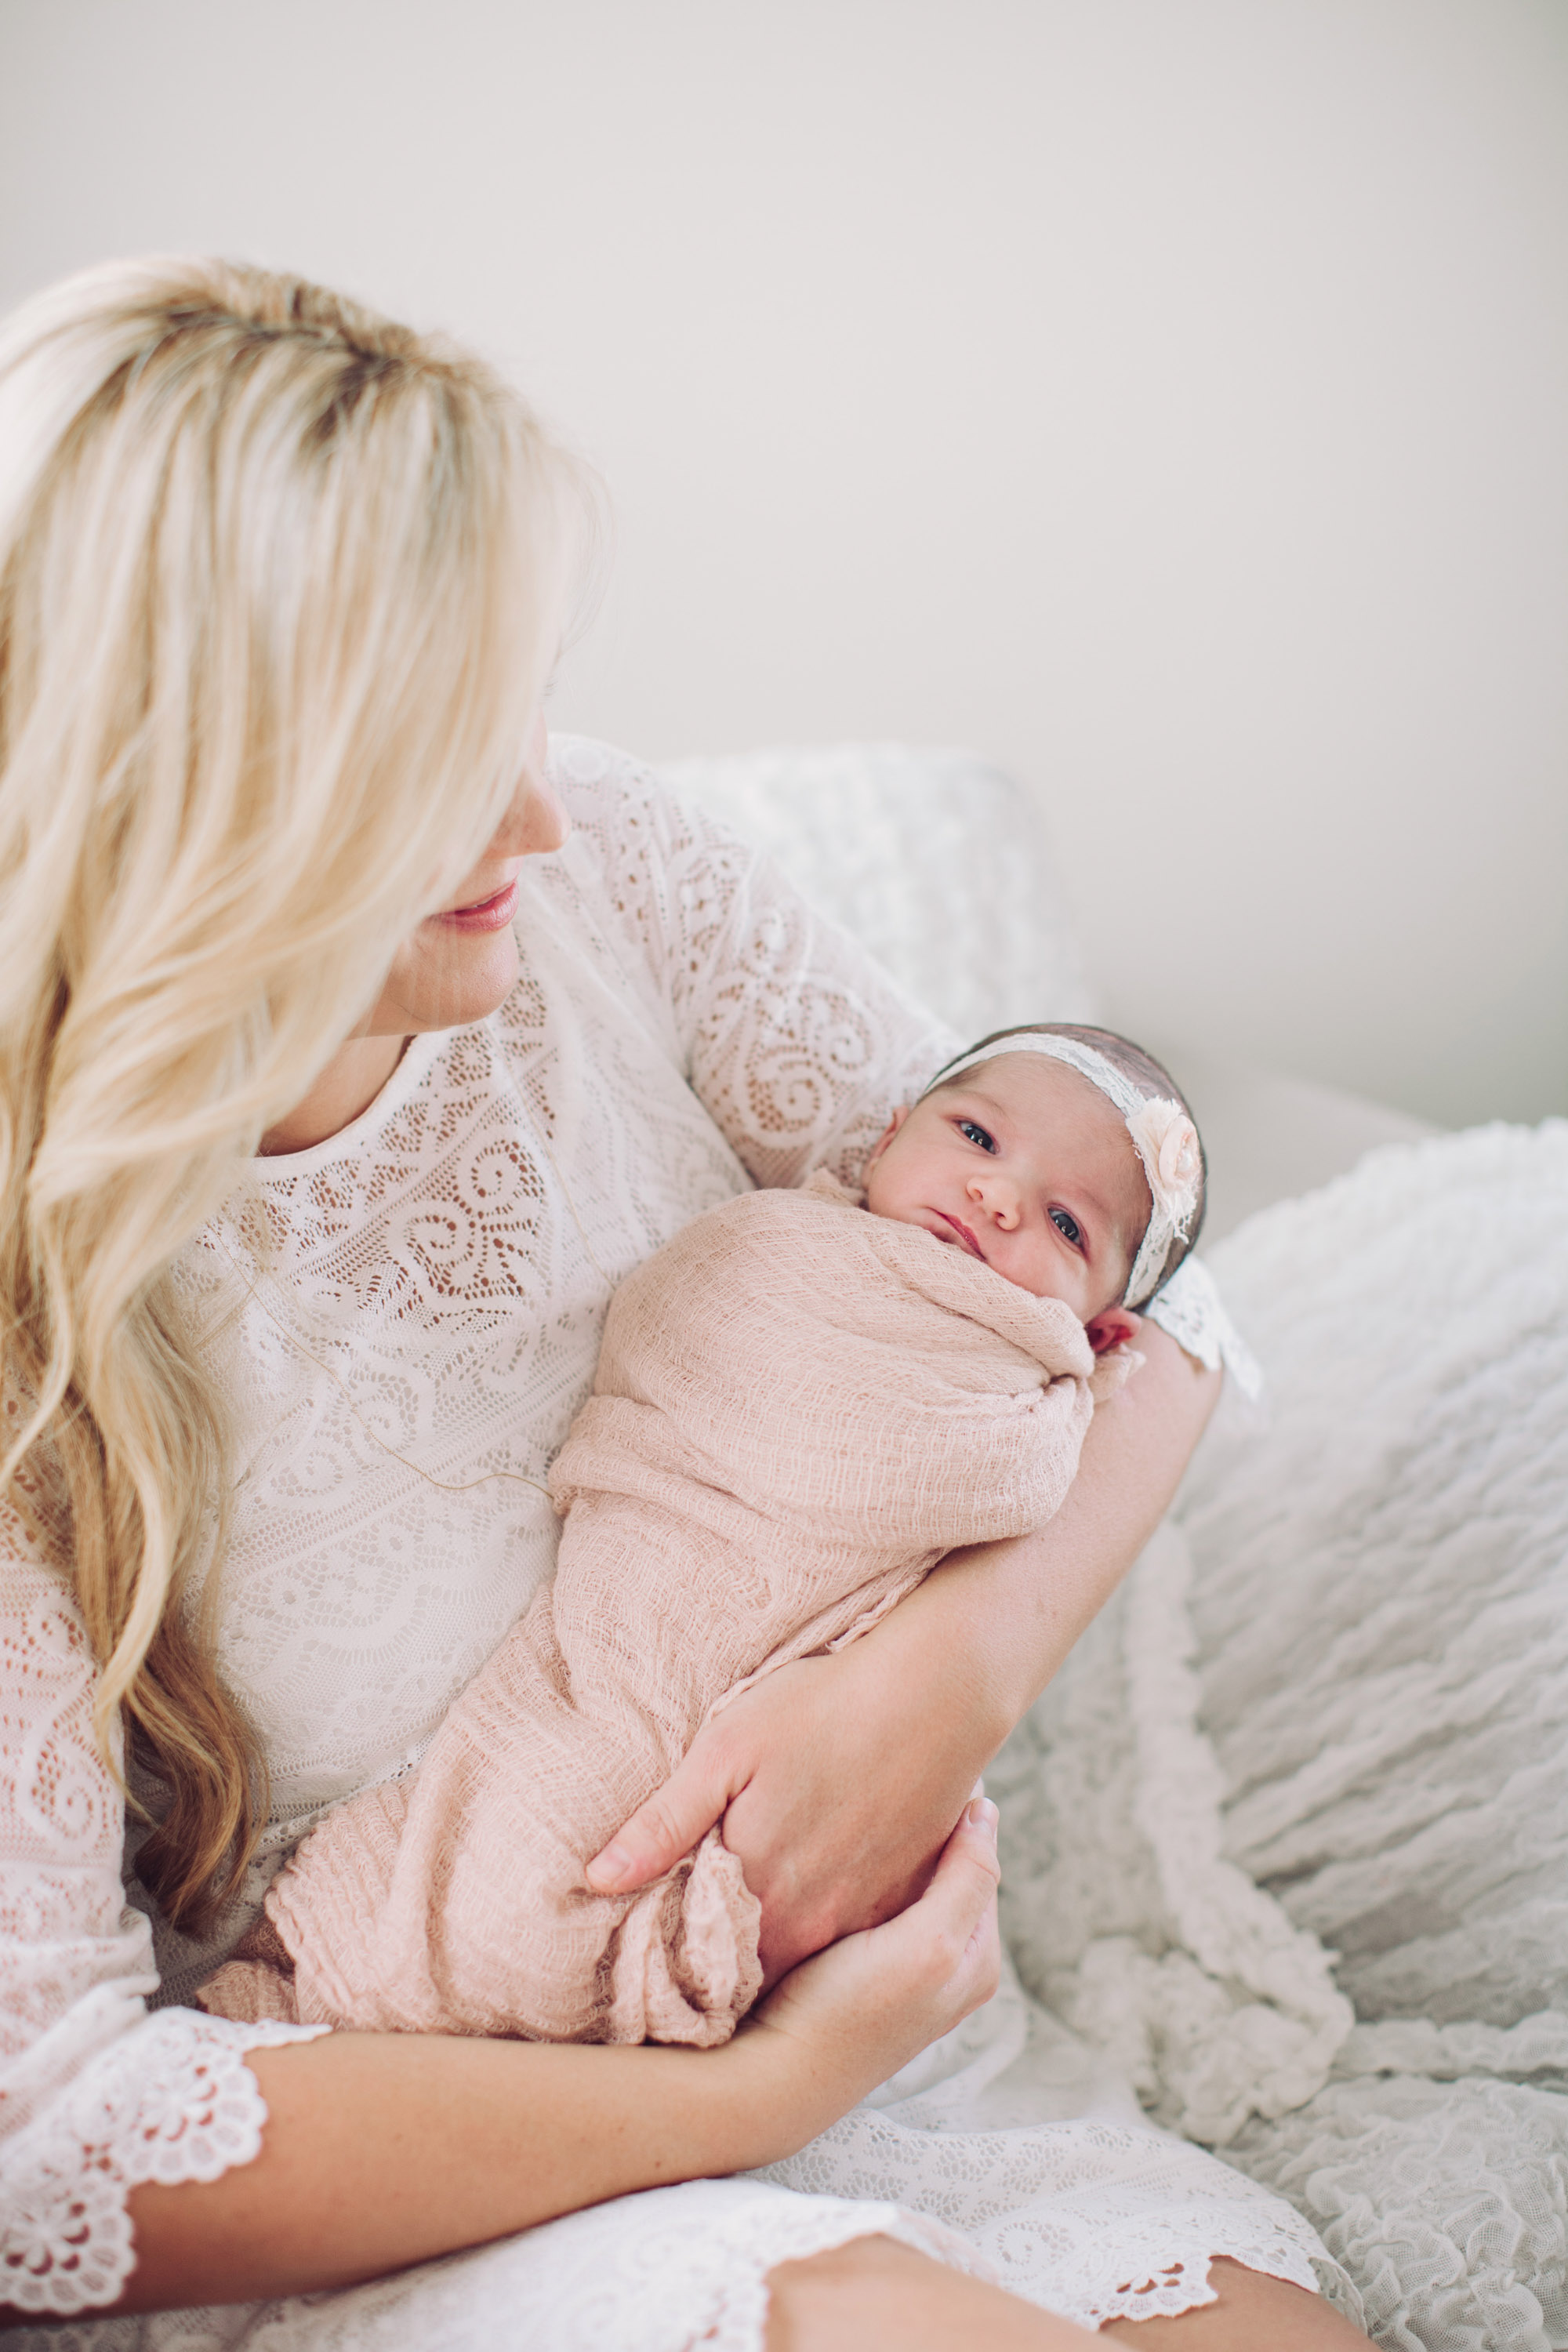 Violet Trevizo Newborn Lifestyle Family Baby Girl Siblings | Rennai Hoefer © Ten22 Studio